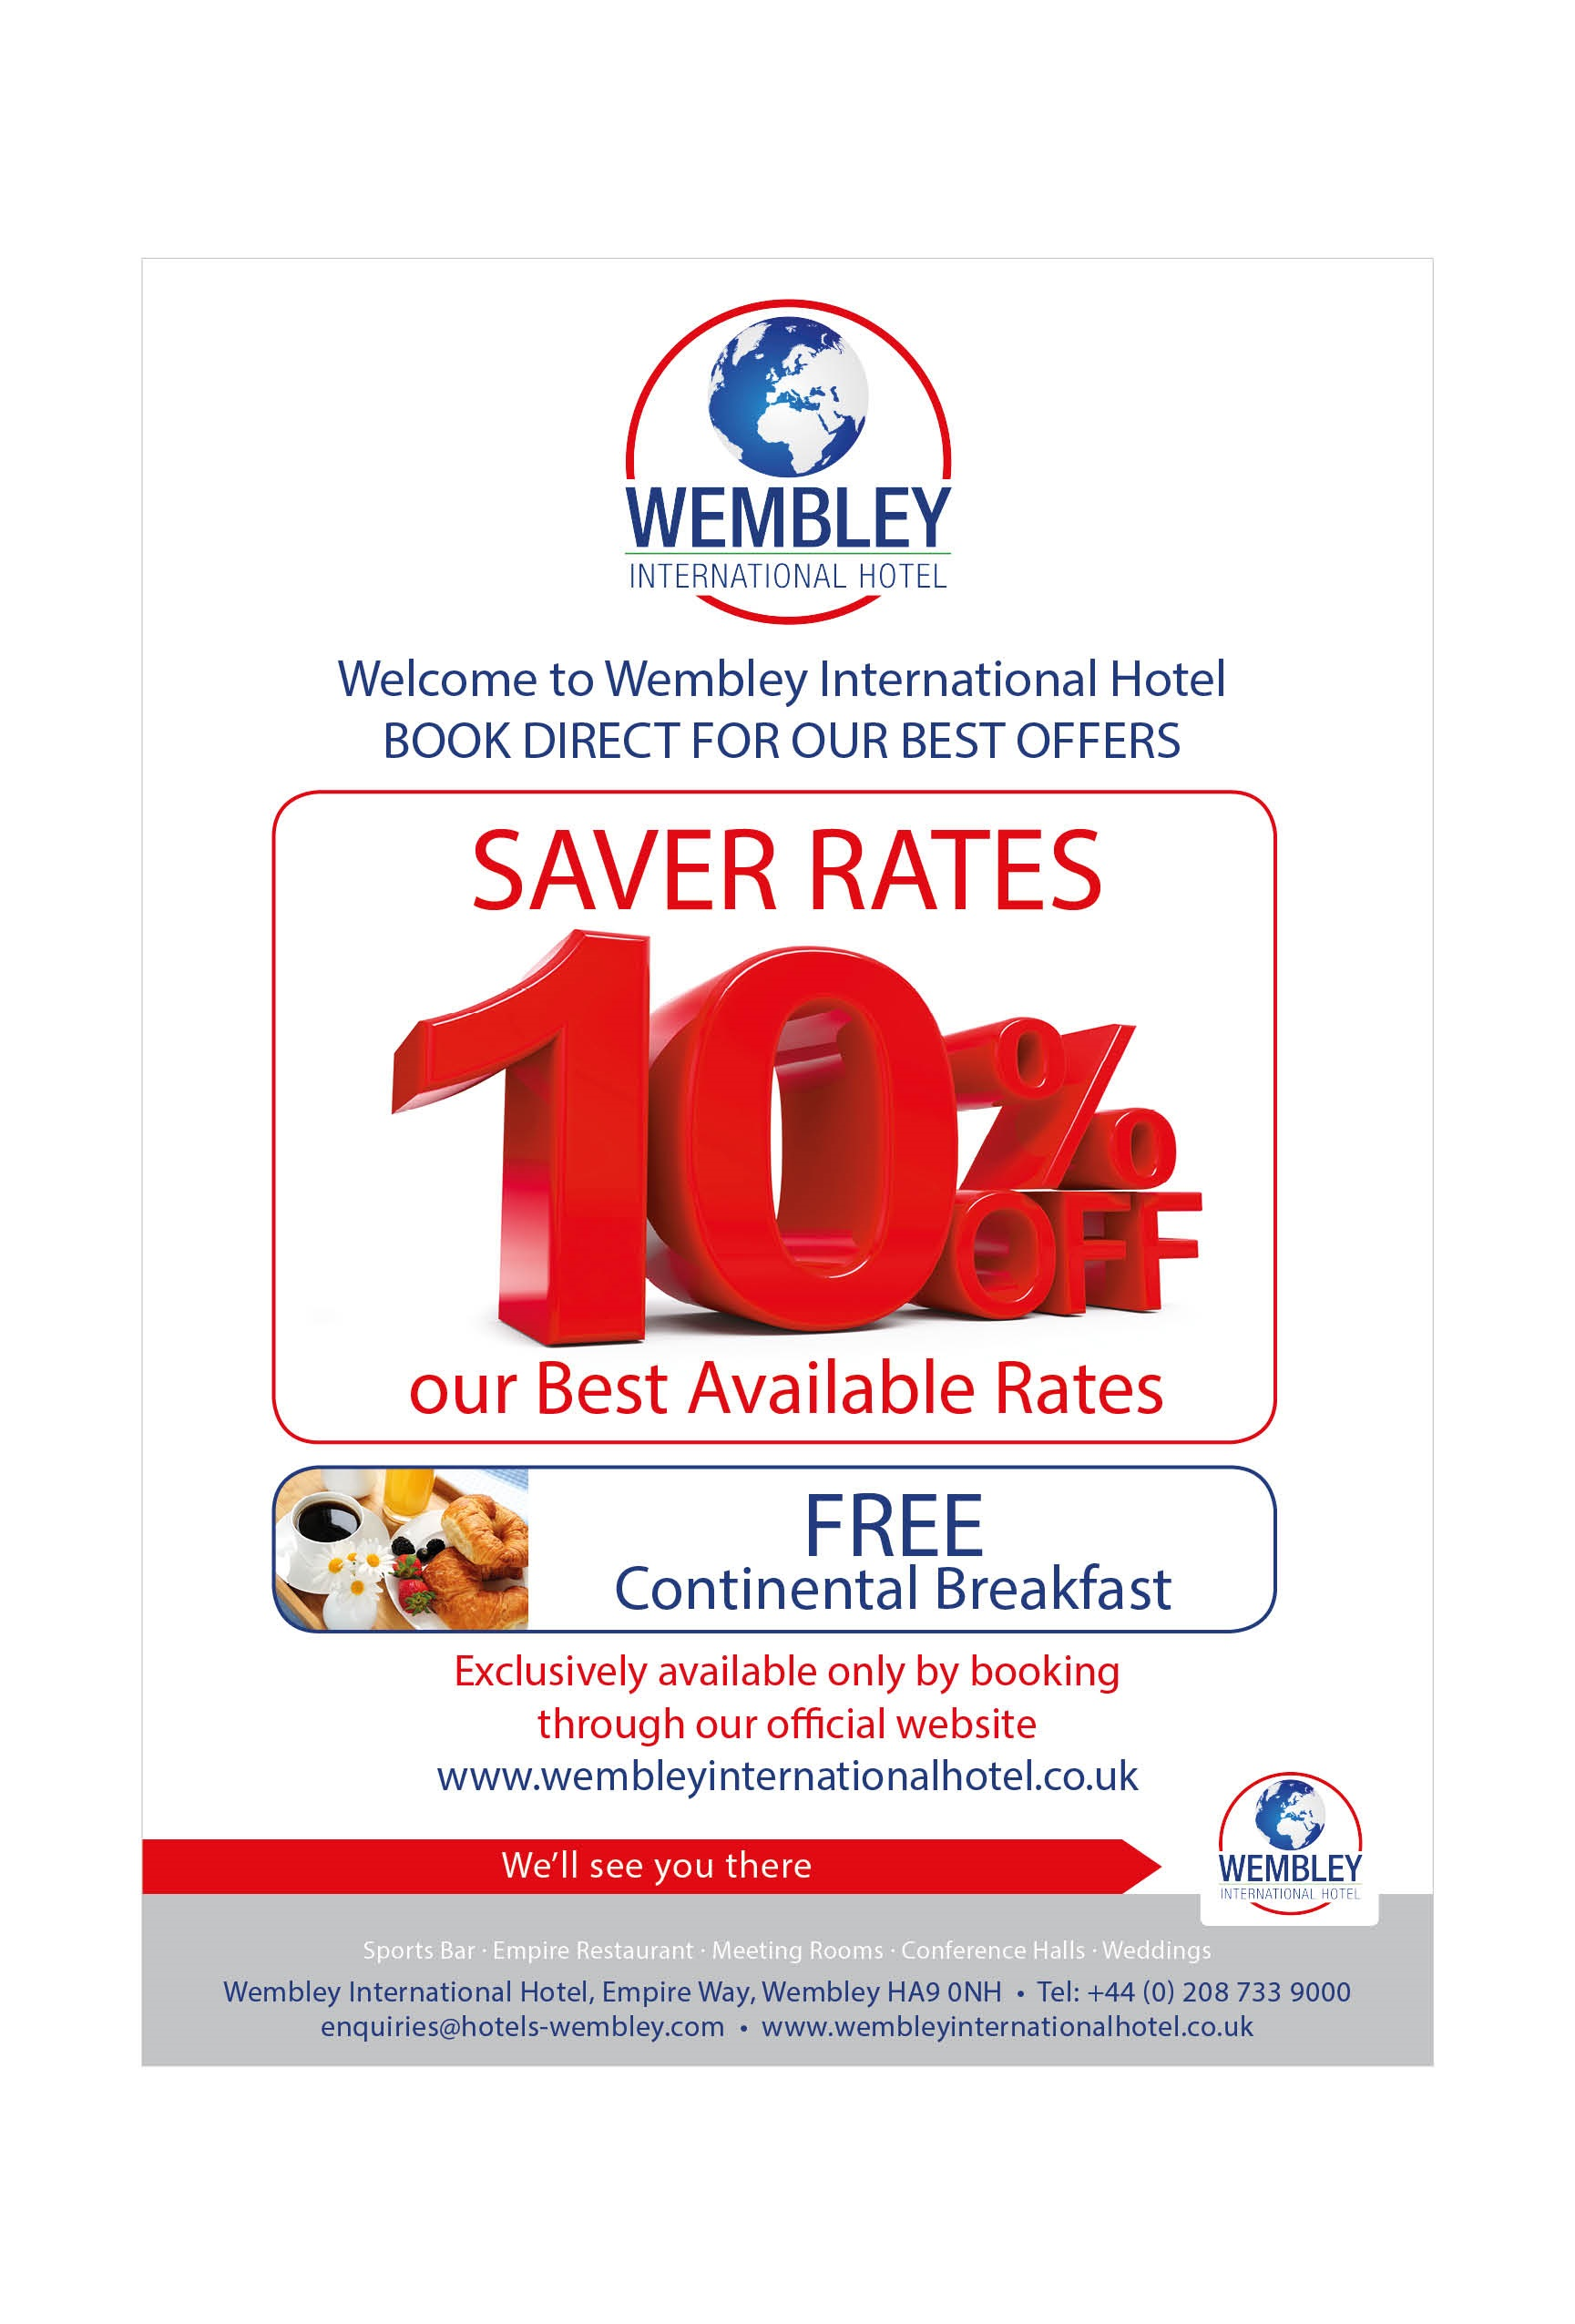 SAVER RATES at Wembley International Hotel